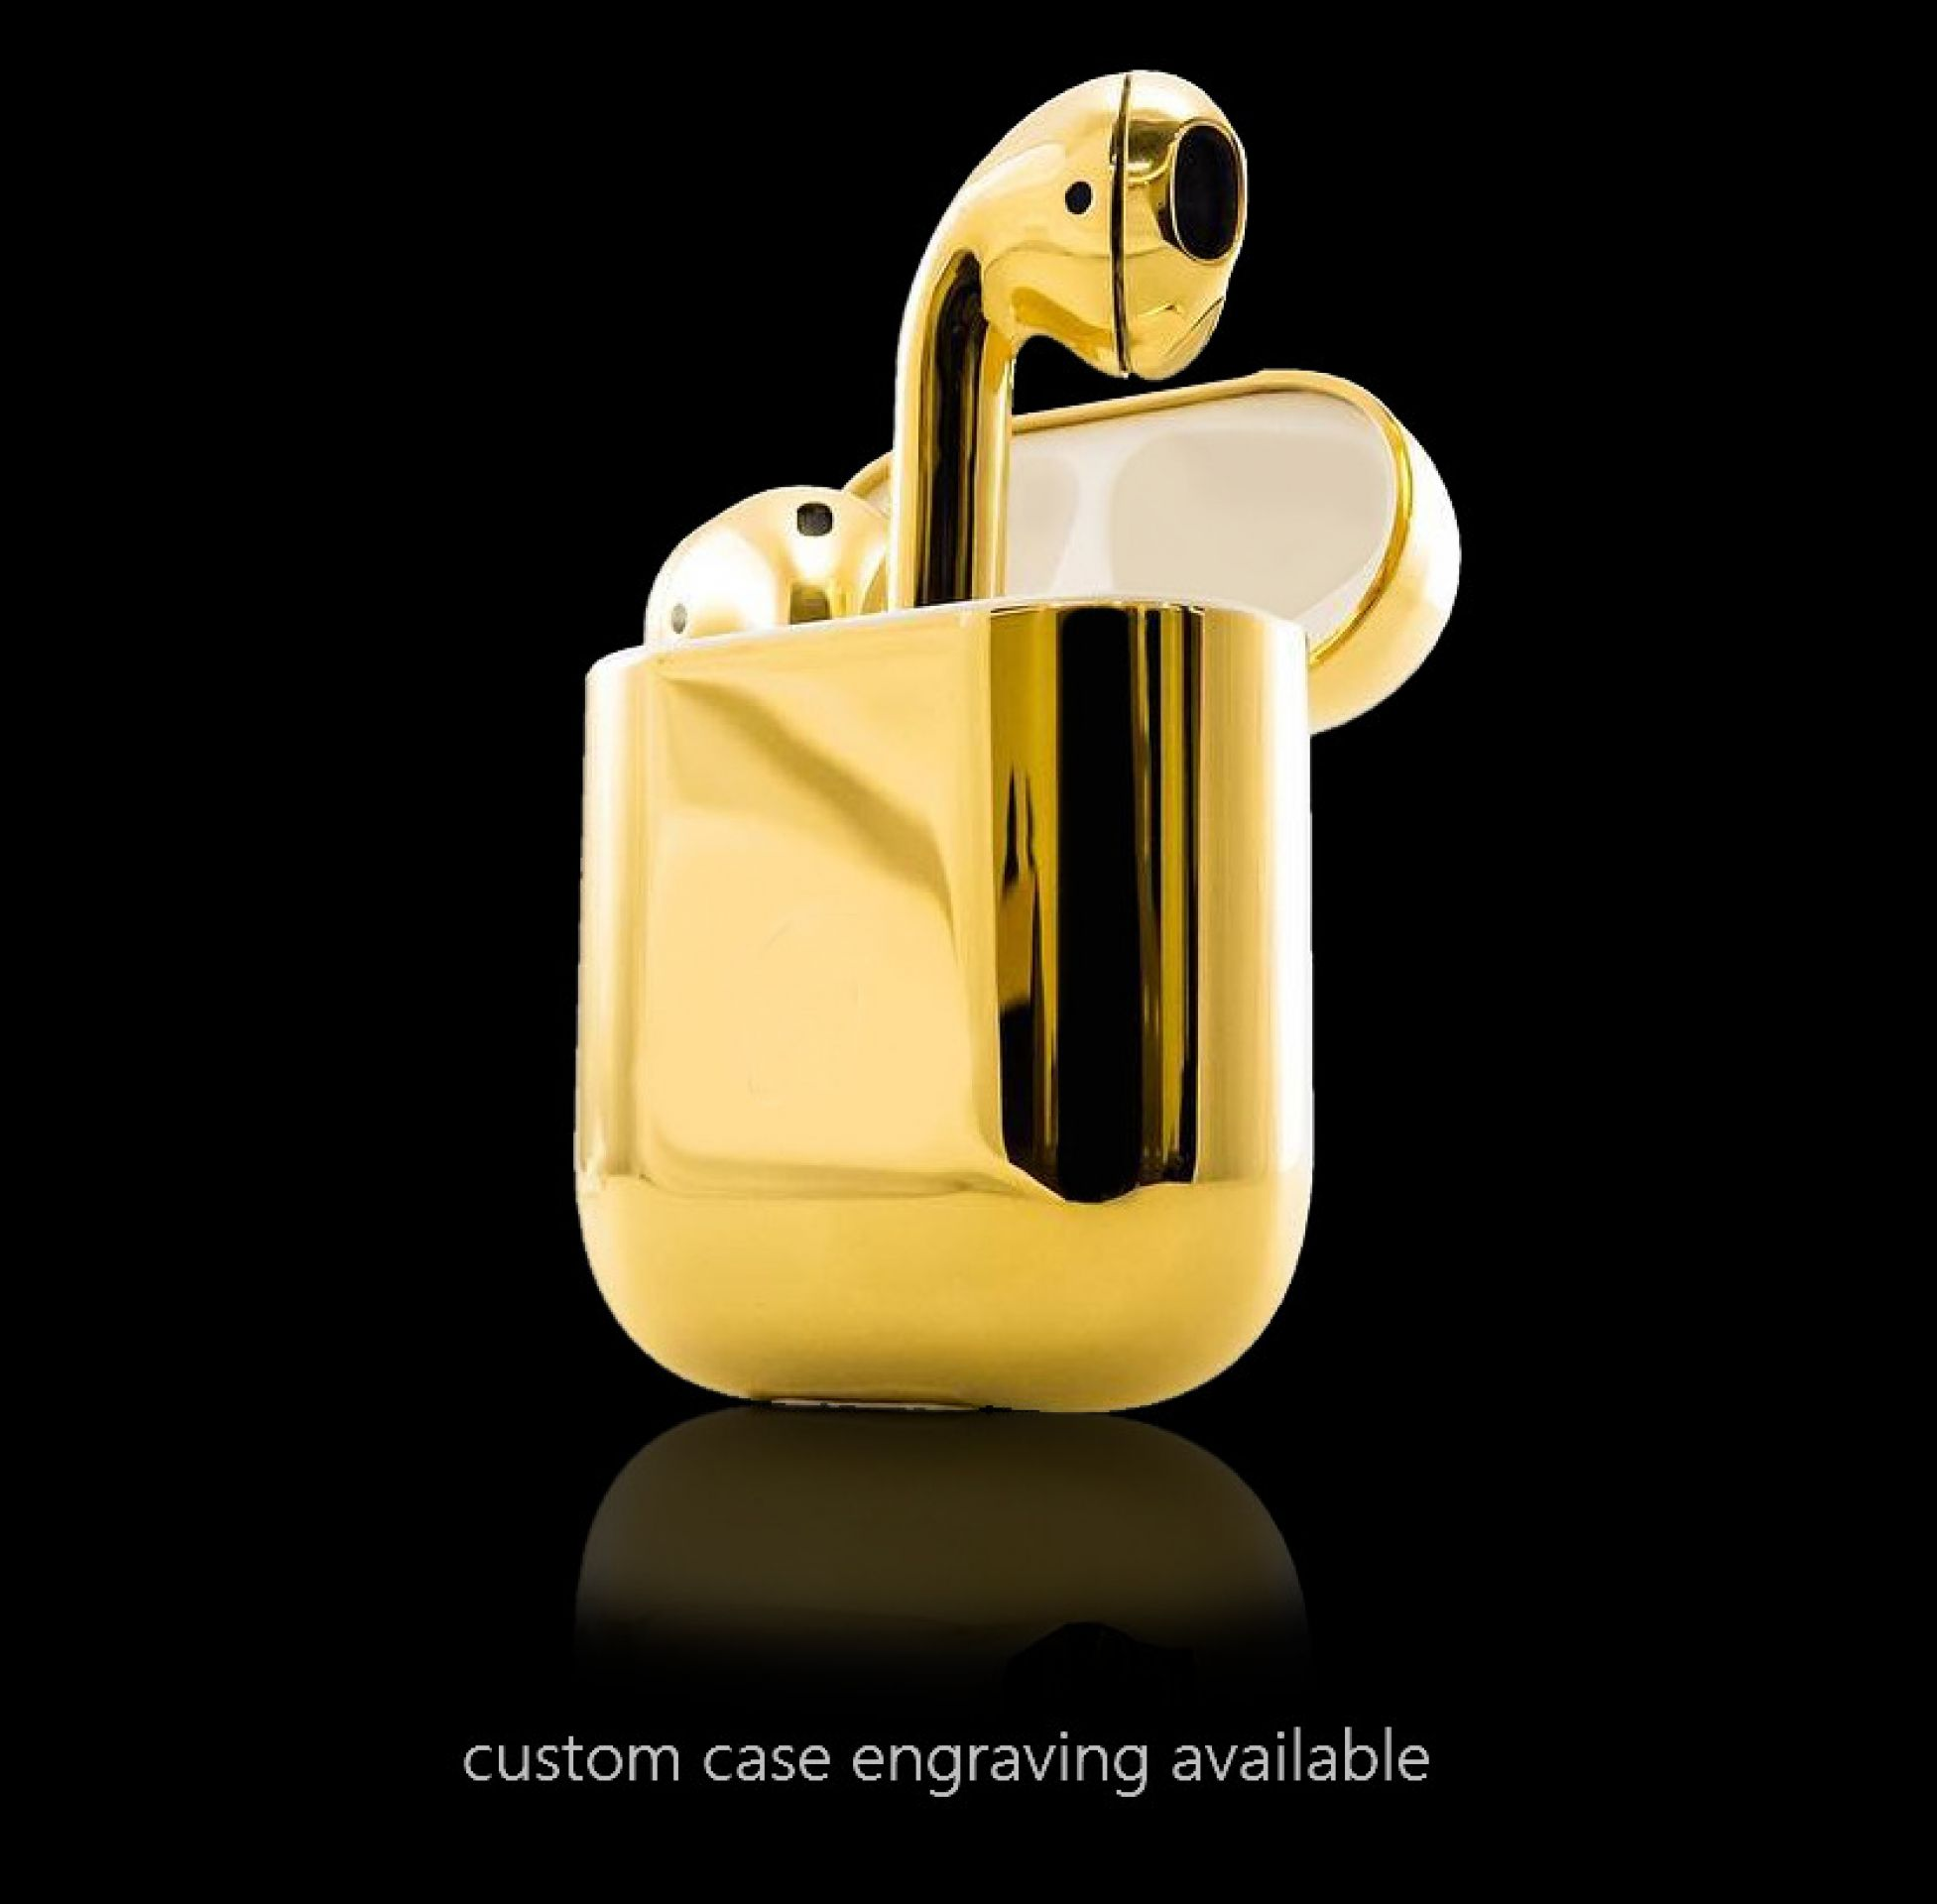 Airpods 24k gold plated & casted in silver  2. generation by Legend